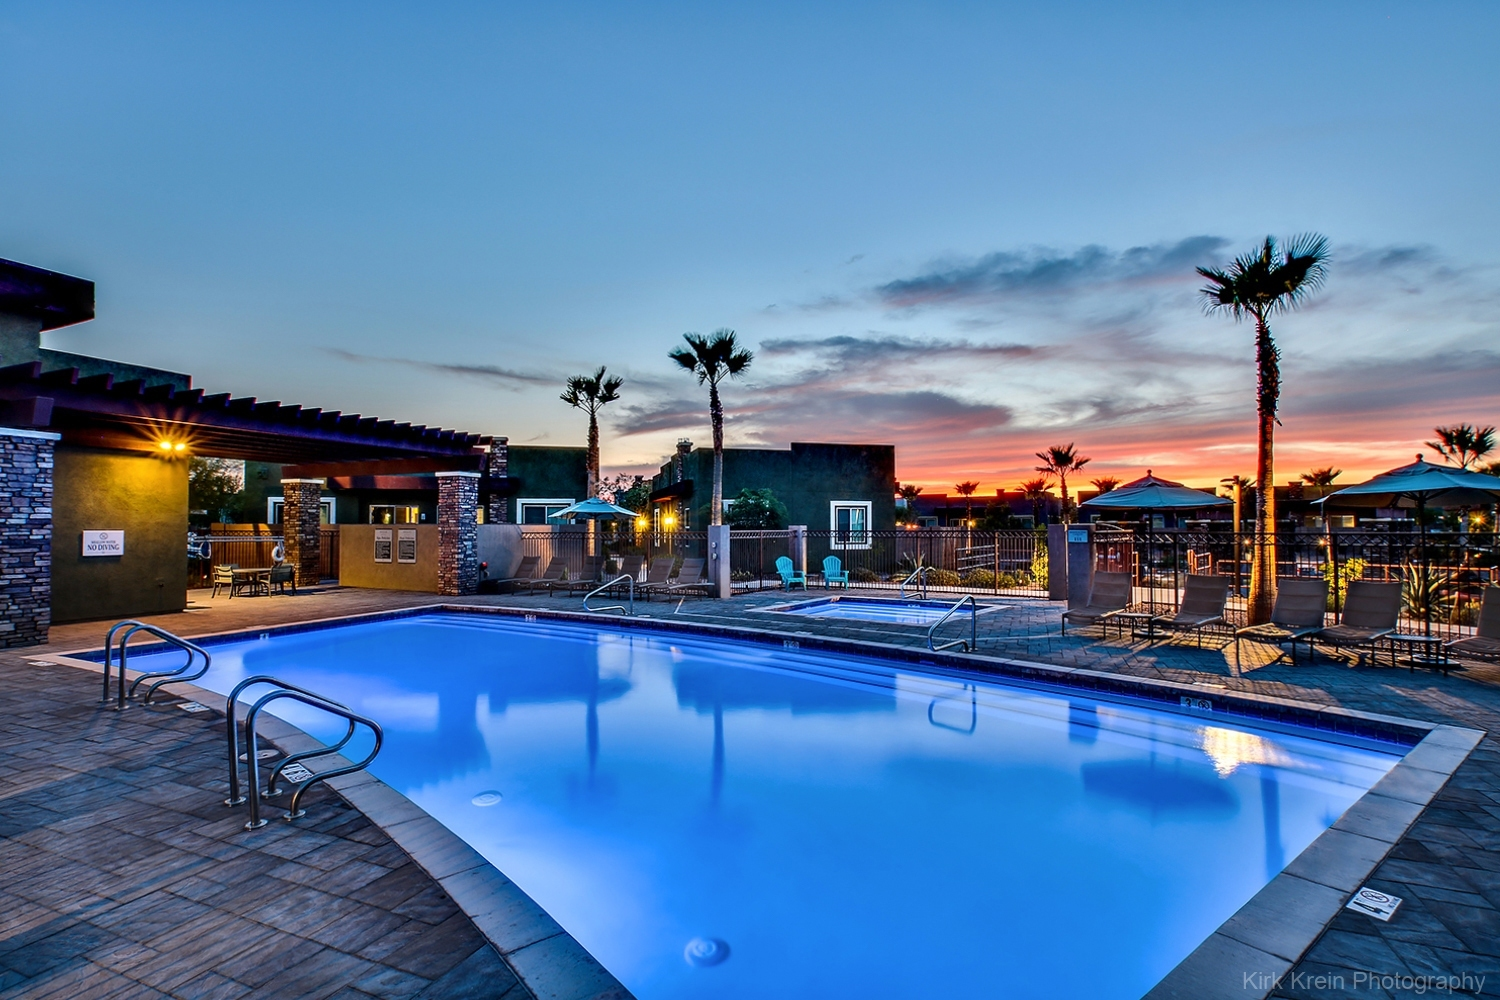 Gilbert, AZ Multifamily Pool Twilight - Phoenix Architectural and Commercial Real Estate Photography by Photographer Kirk Krein, Phoenix, AZ and the East Valley including Gilbert, Chandler, Scottsdale, Tempe and Mesa, AZ.